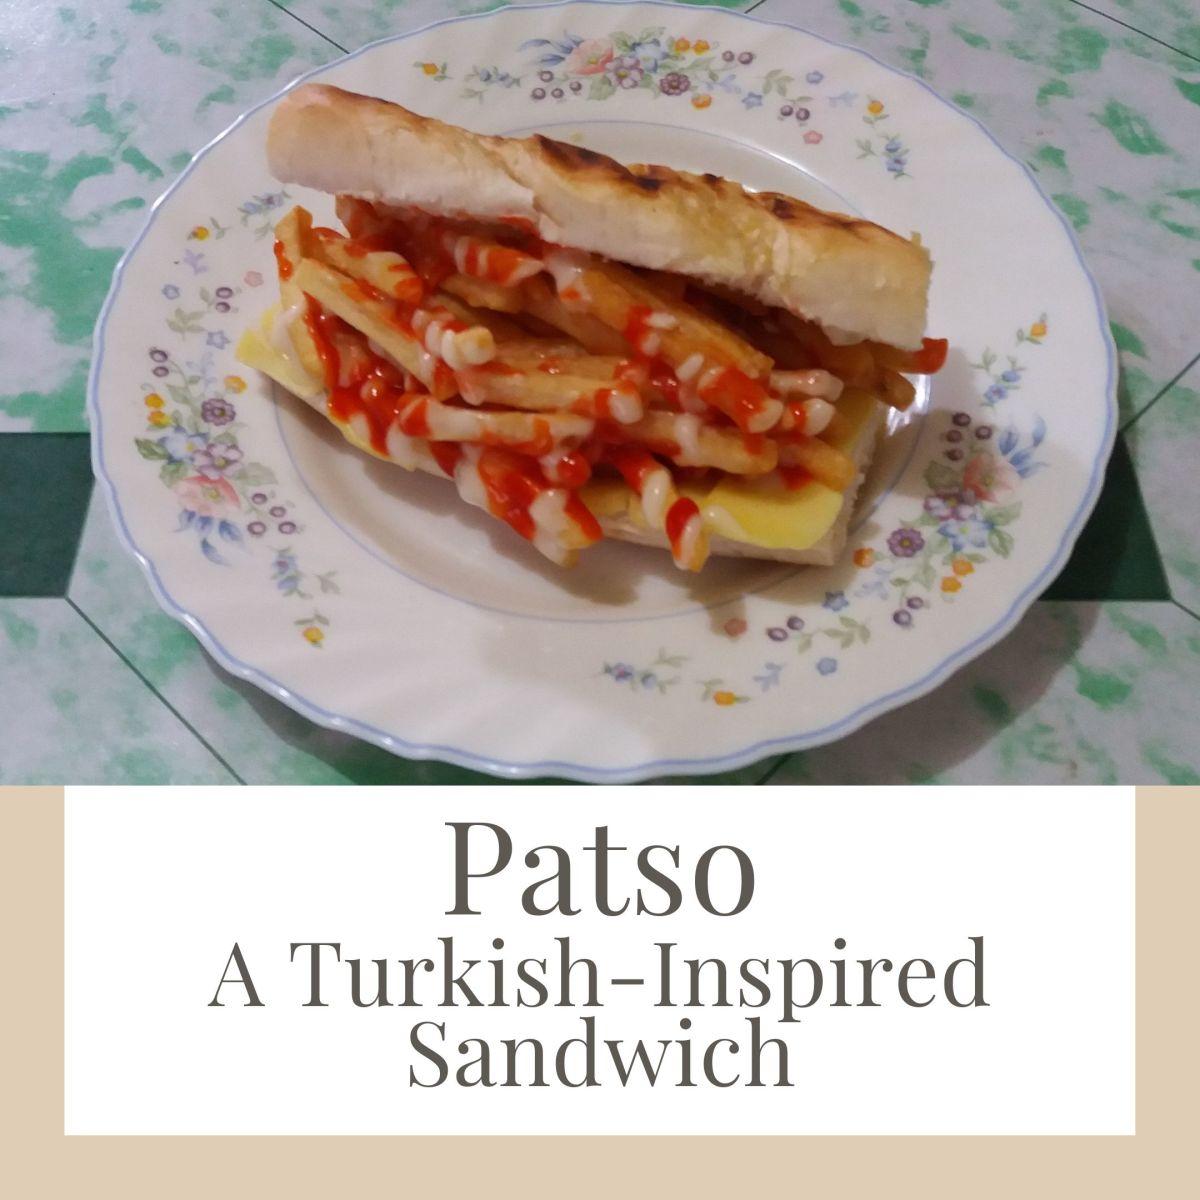 Patso: A Turkish-Inspired Sandwich